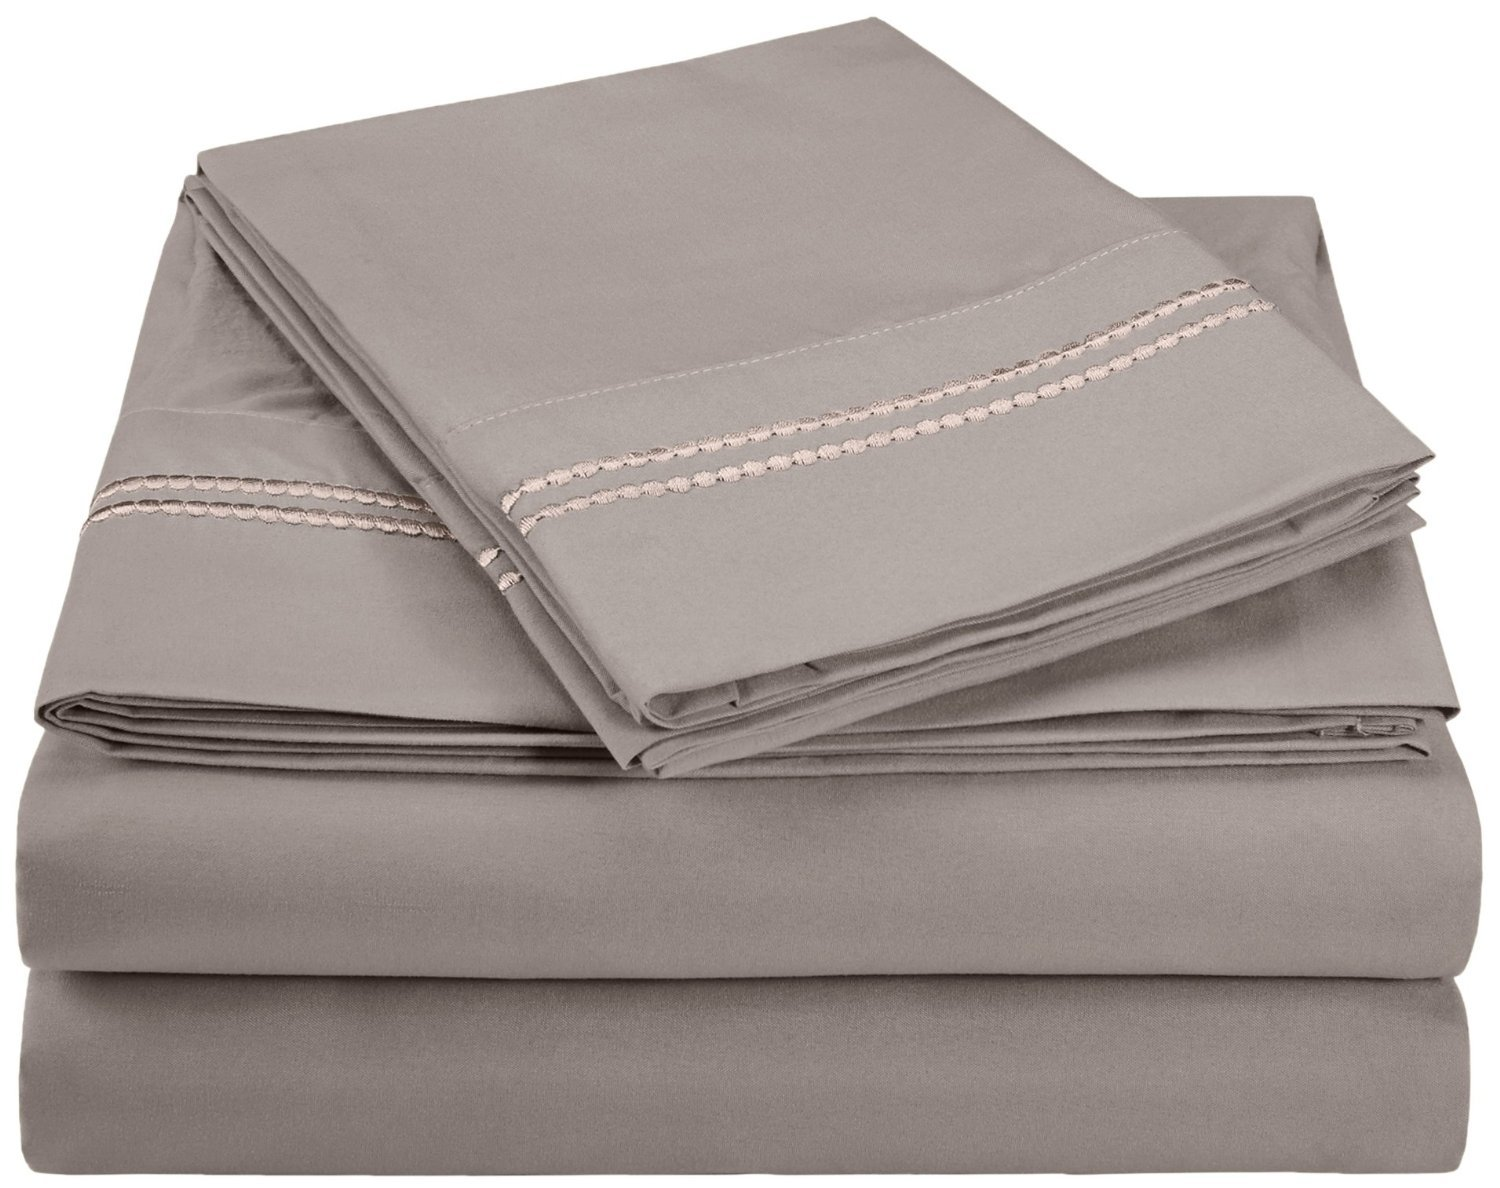 Super Soft, Light Weight, 100% Brushed Microfiber, Twin XL, Wrinkle Resistant, 3-Piece Sheet Set Aqua with 2-Line Embroidery in Gift Box Luxor Linens MF3000XLSH 2LAQ